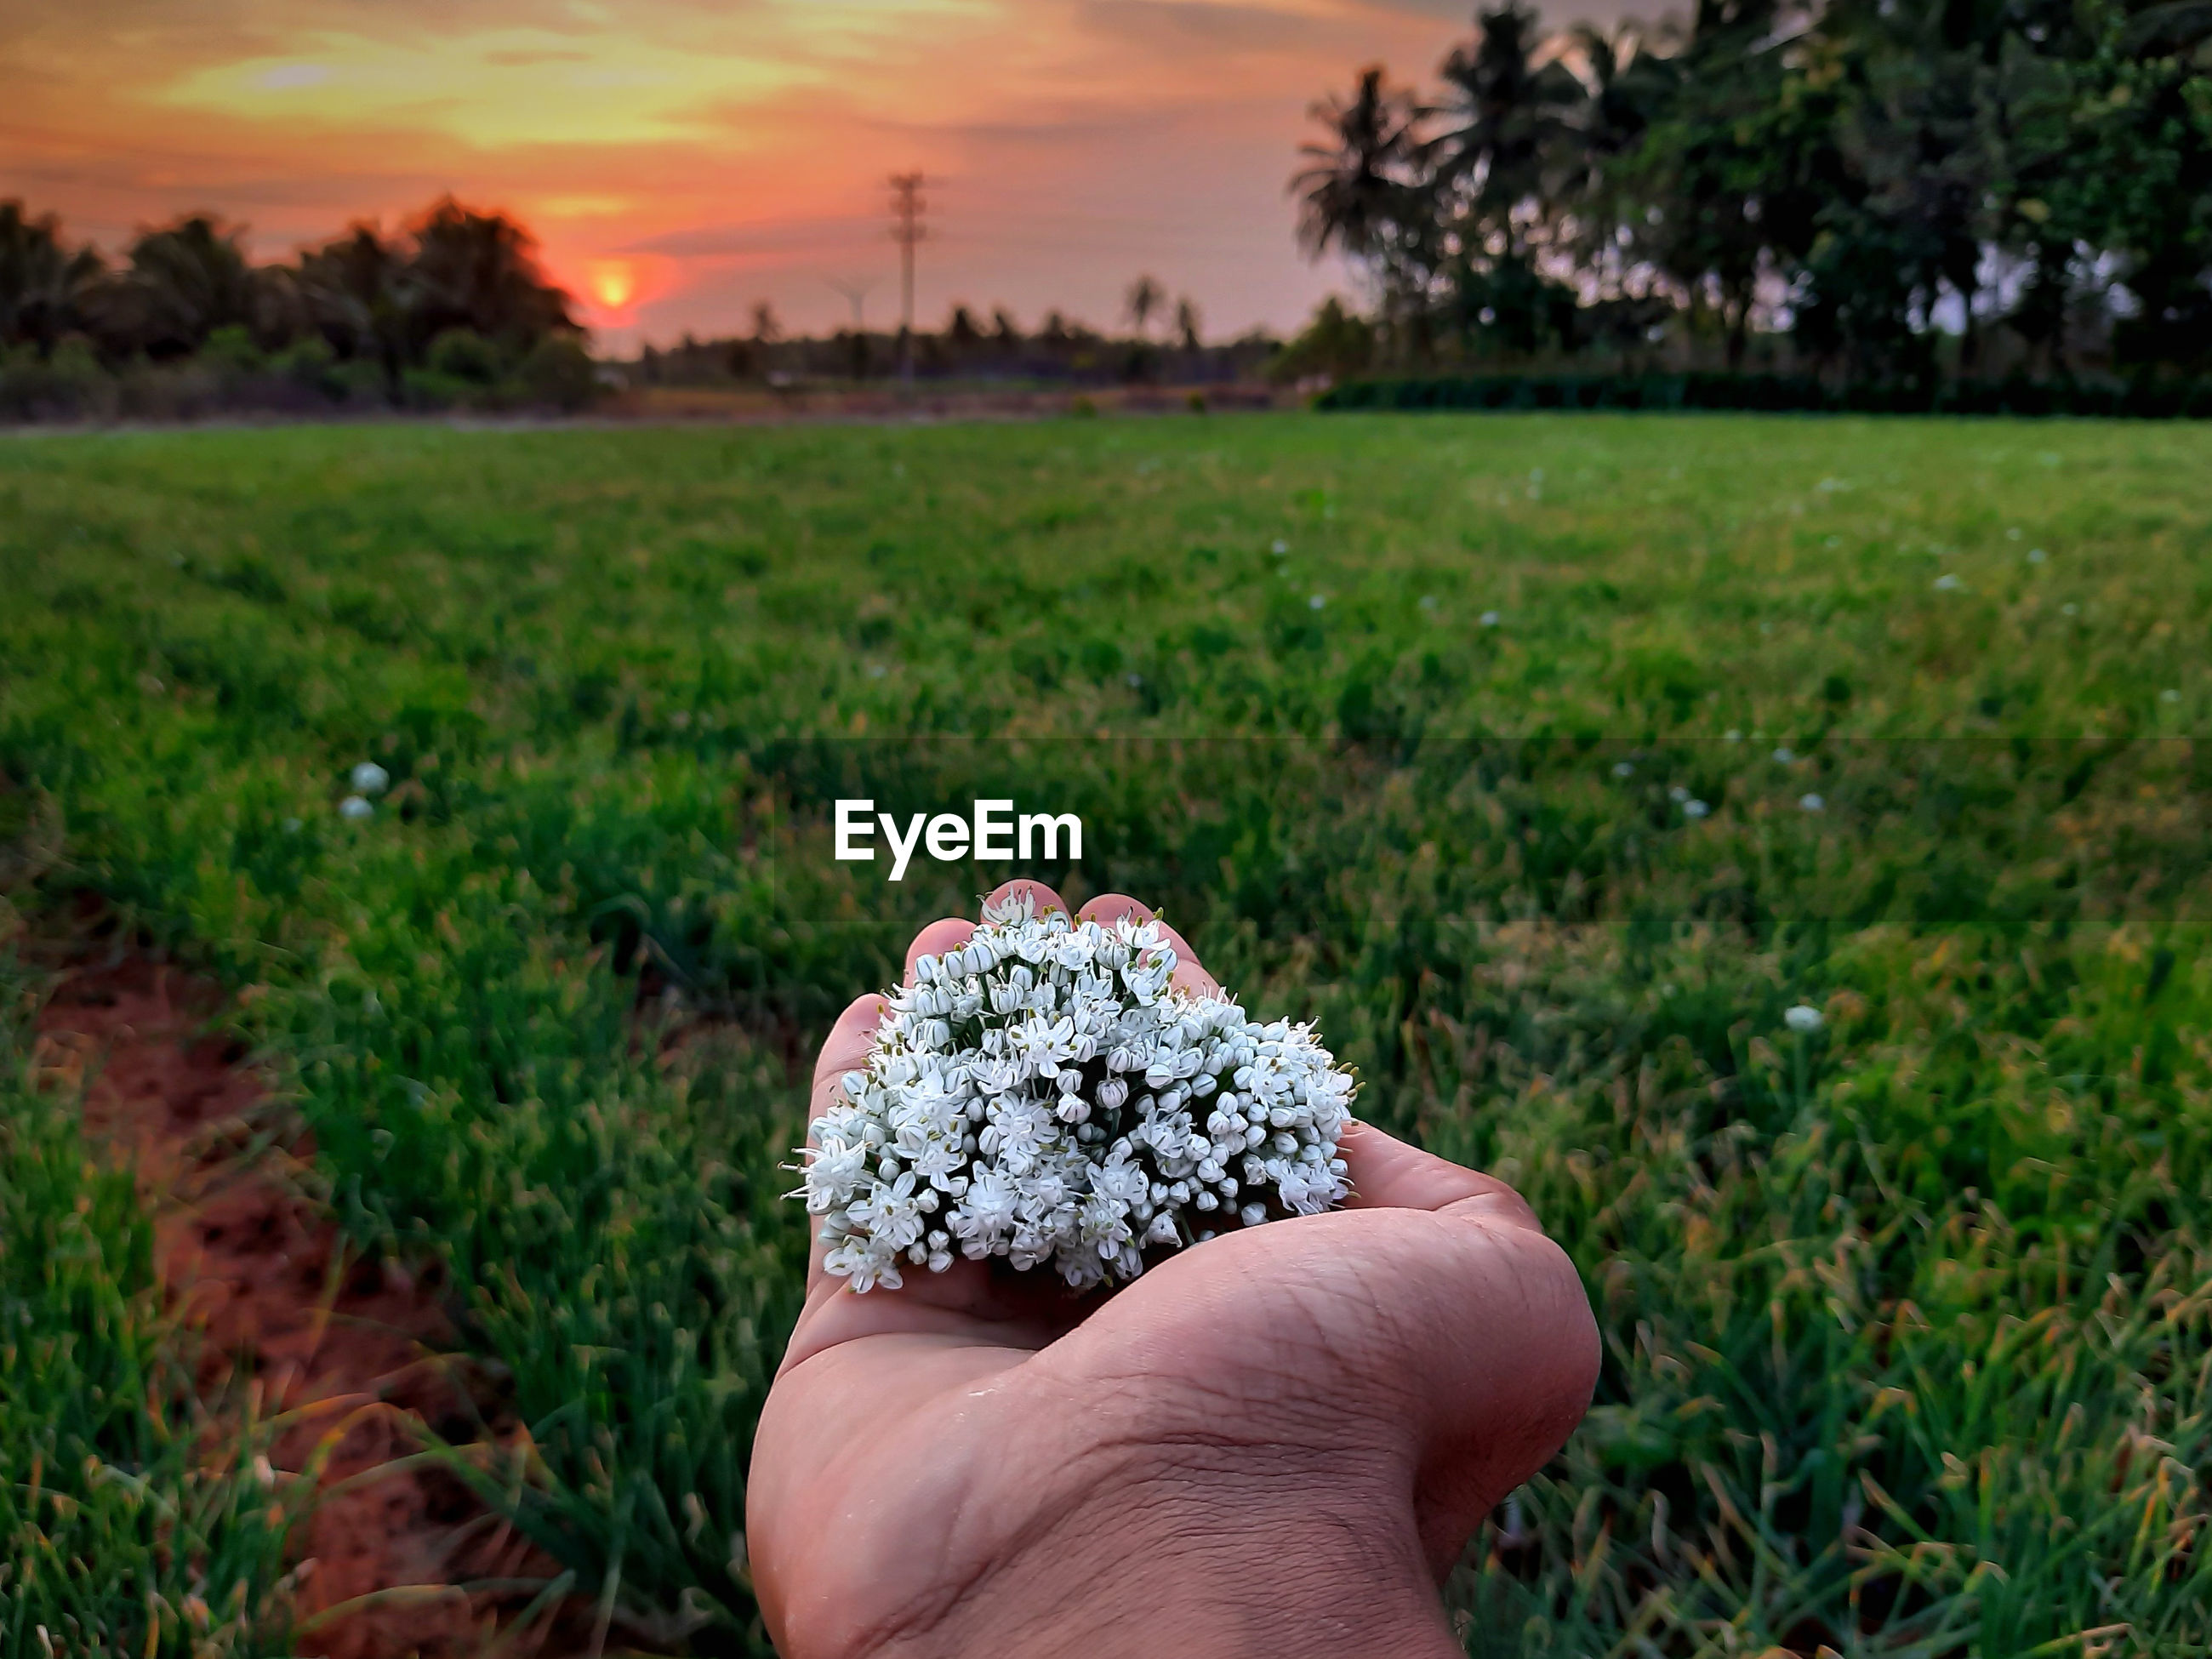 Man holding white flowers over filed against sky during sunset